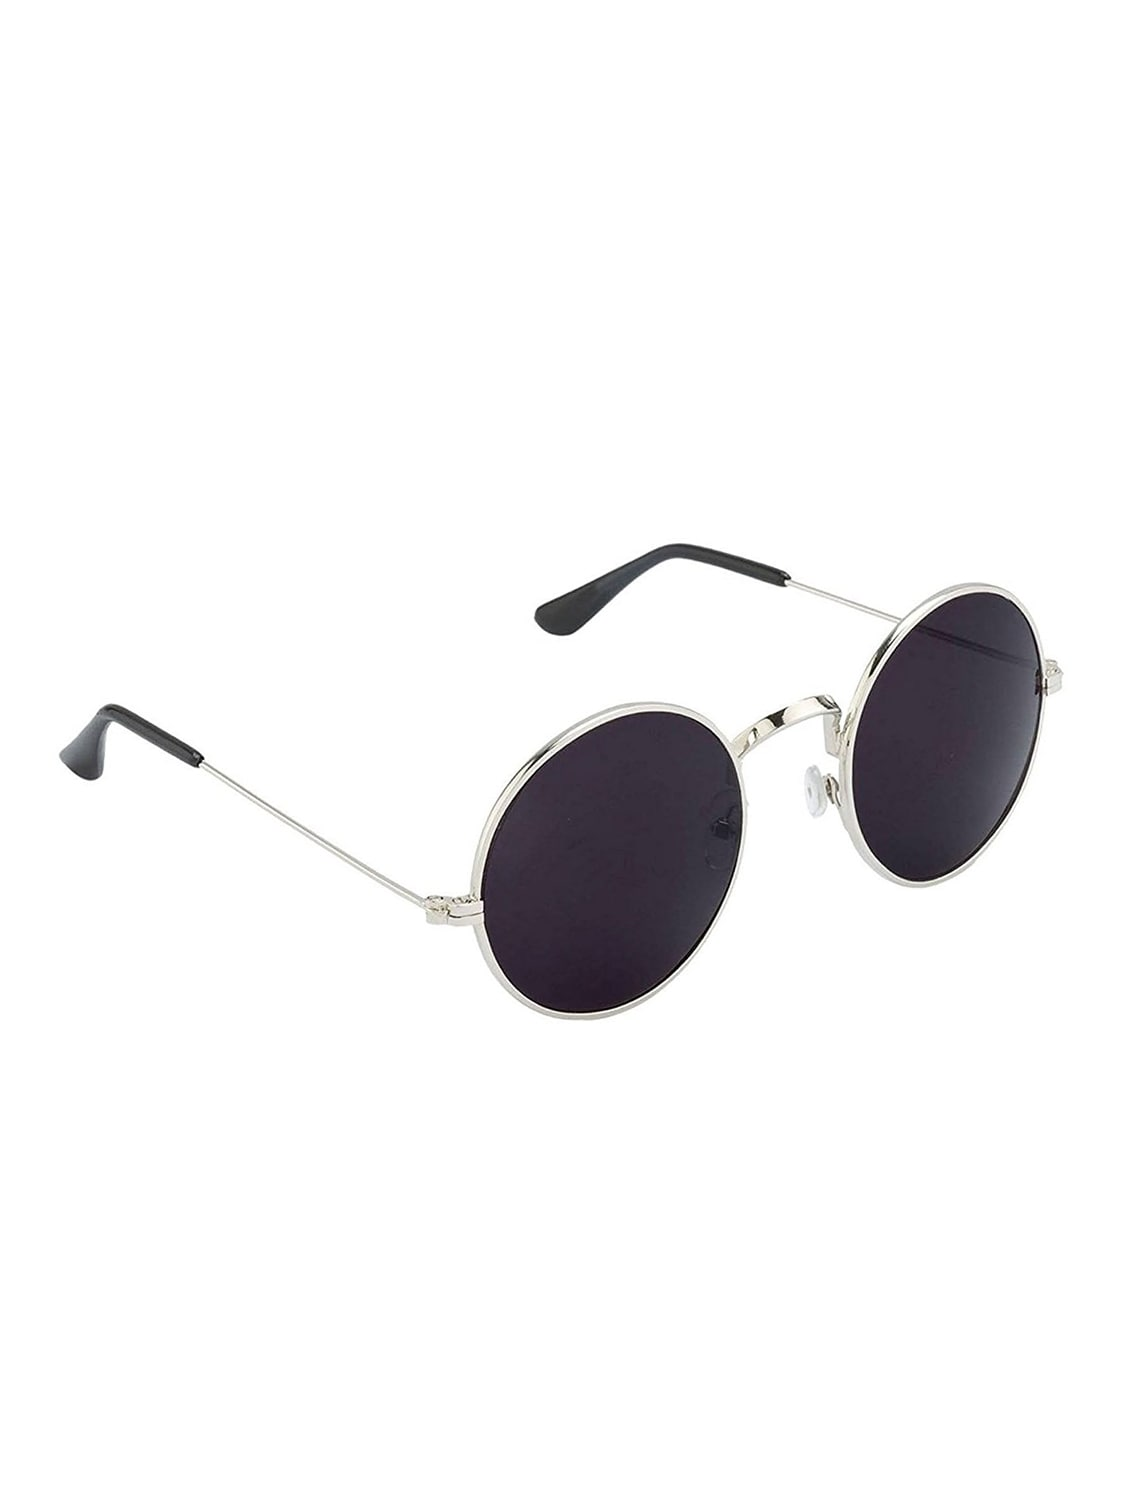 57fe81477ec Buy Eagle Bkack Bar Sliver Round Gandhi Combo by Eagle - Online shopping  for Men Sunglasses in India